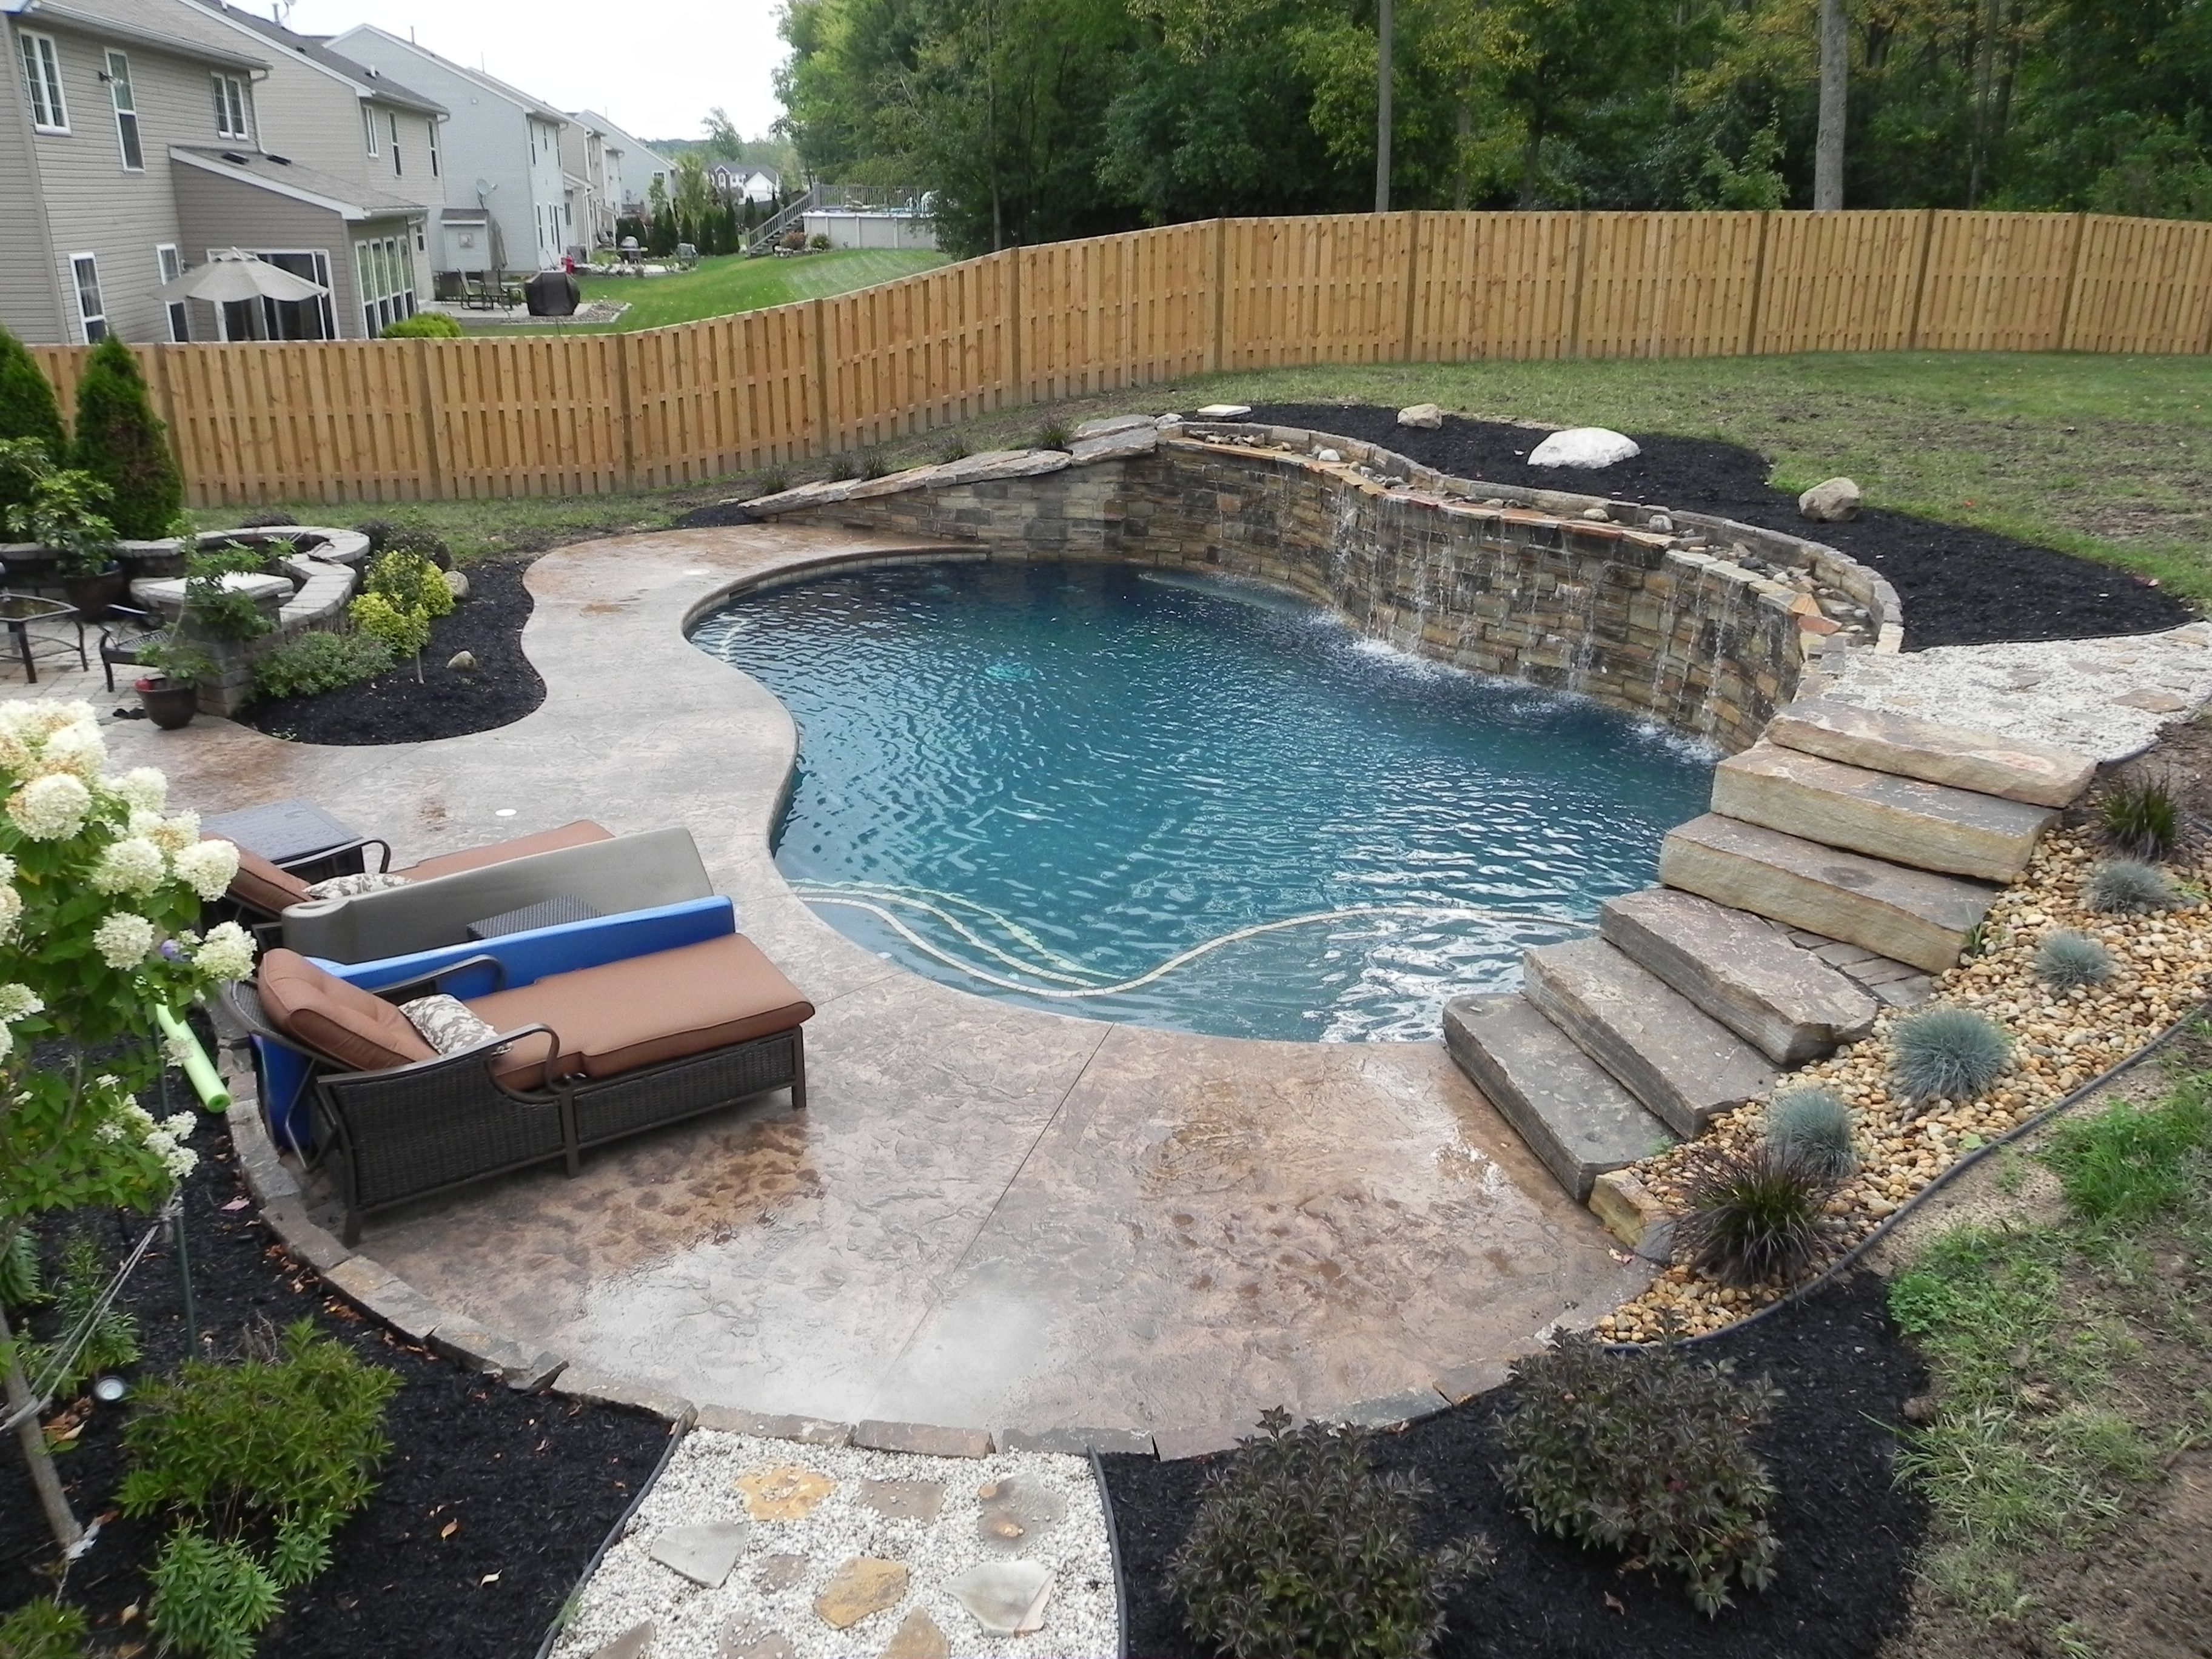 18x34 Freeform Gunite Swimming Pool With Raised Wall Waterfalls Building A Pool Affordable Swimming Pools Small Inground Pool